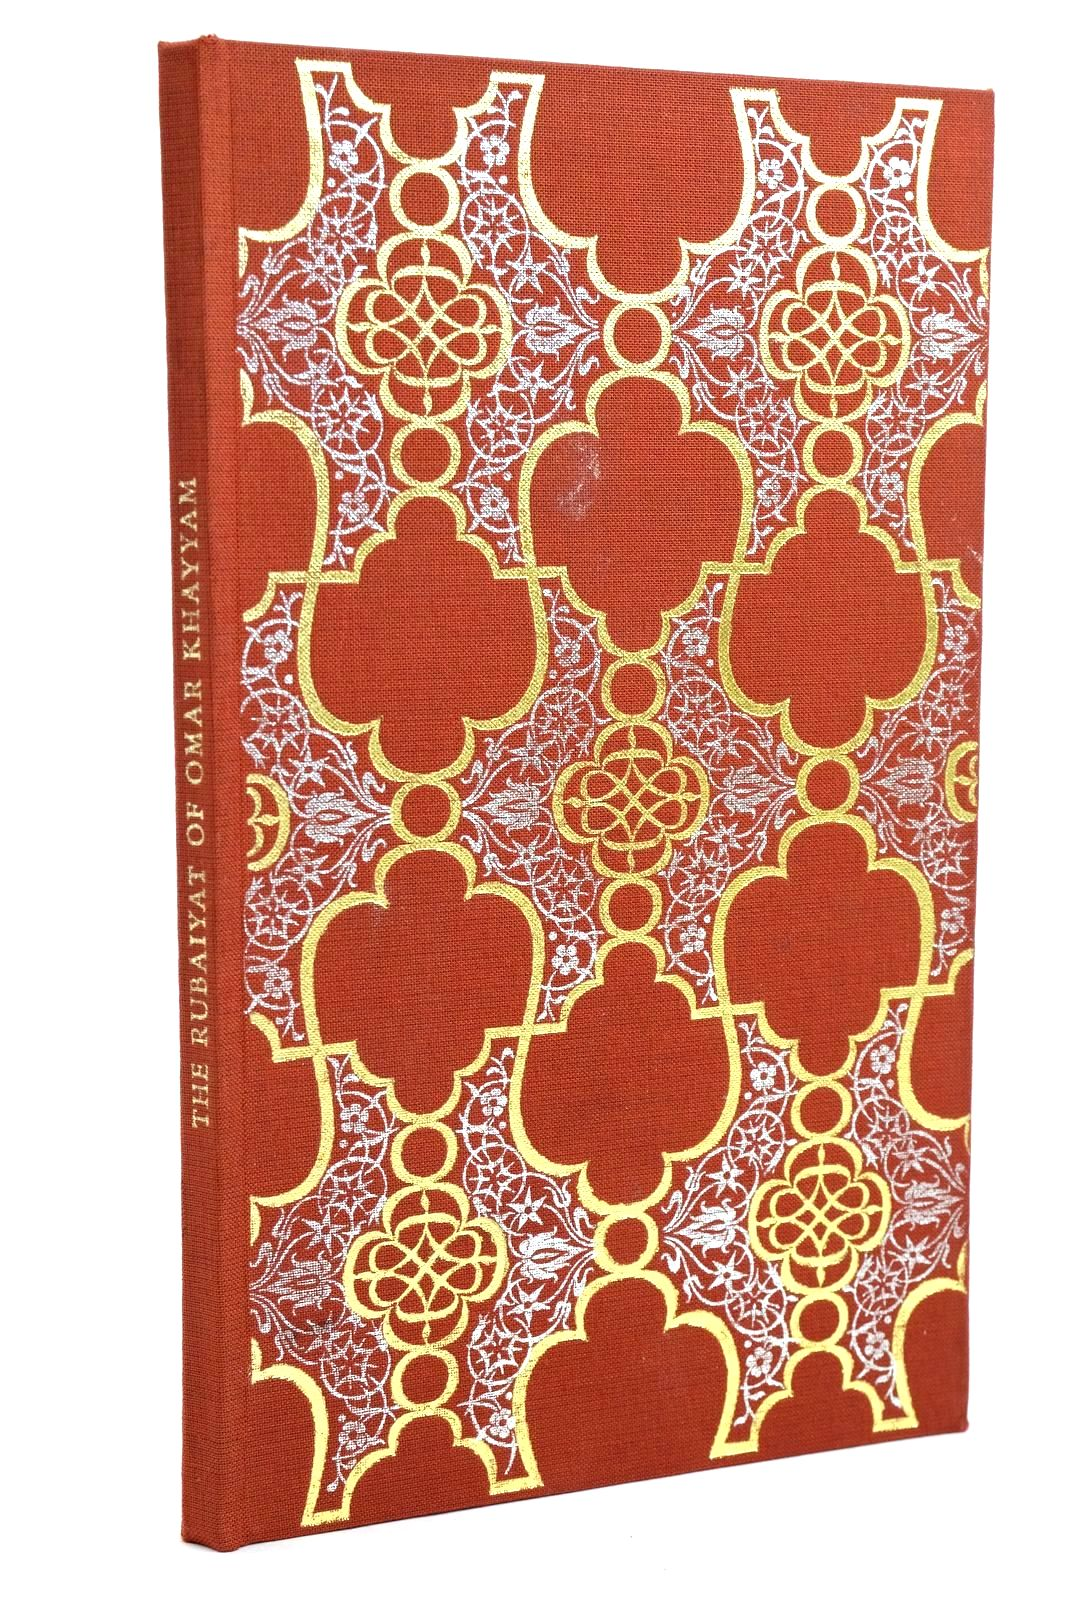 Photo of THE RUBAIYAT OF OMAR KHAYYAM- Stock Number: 1320419